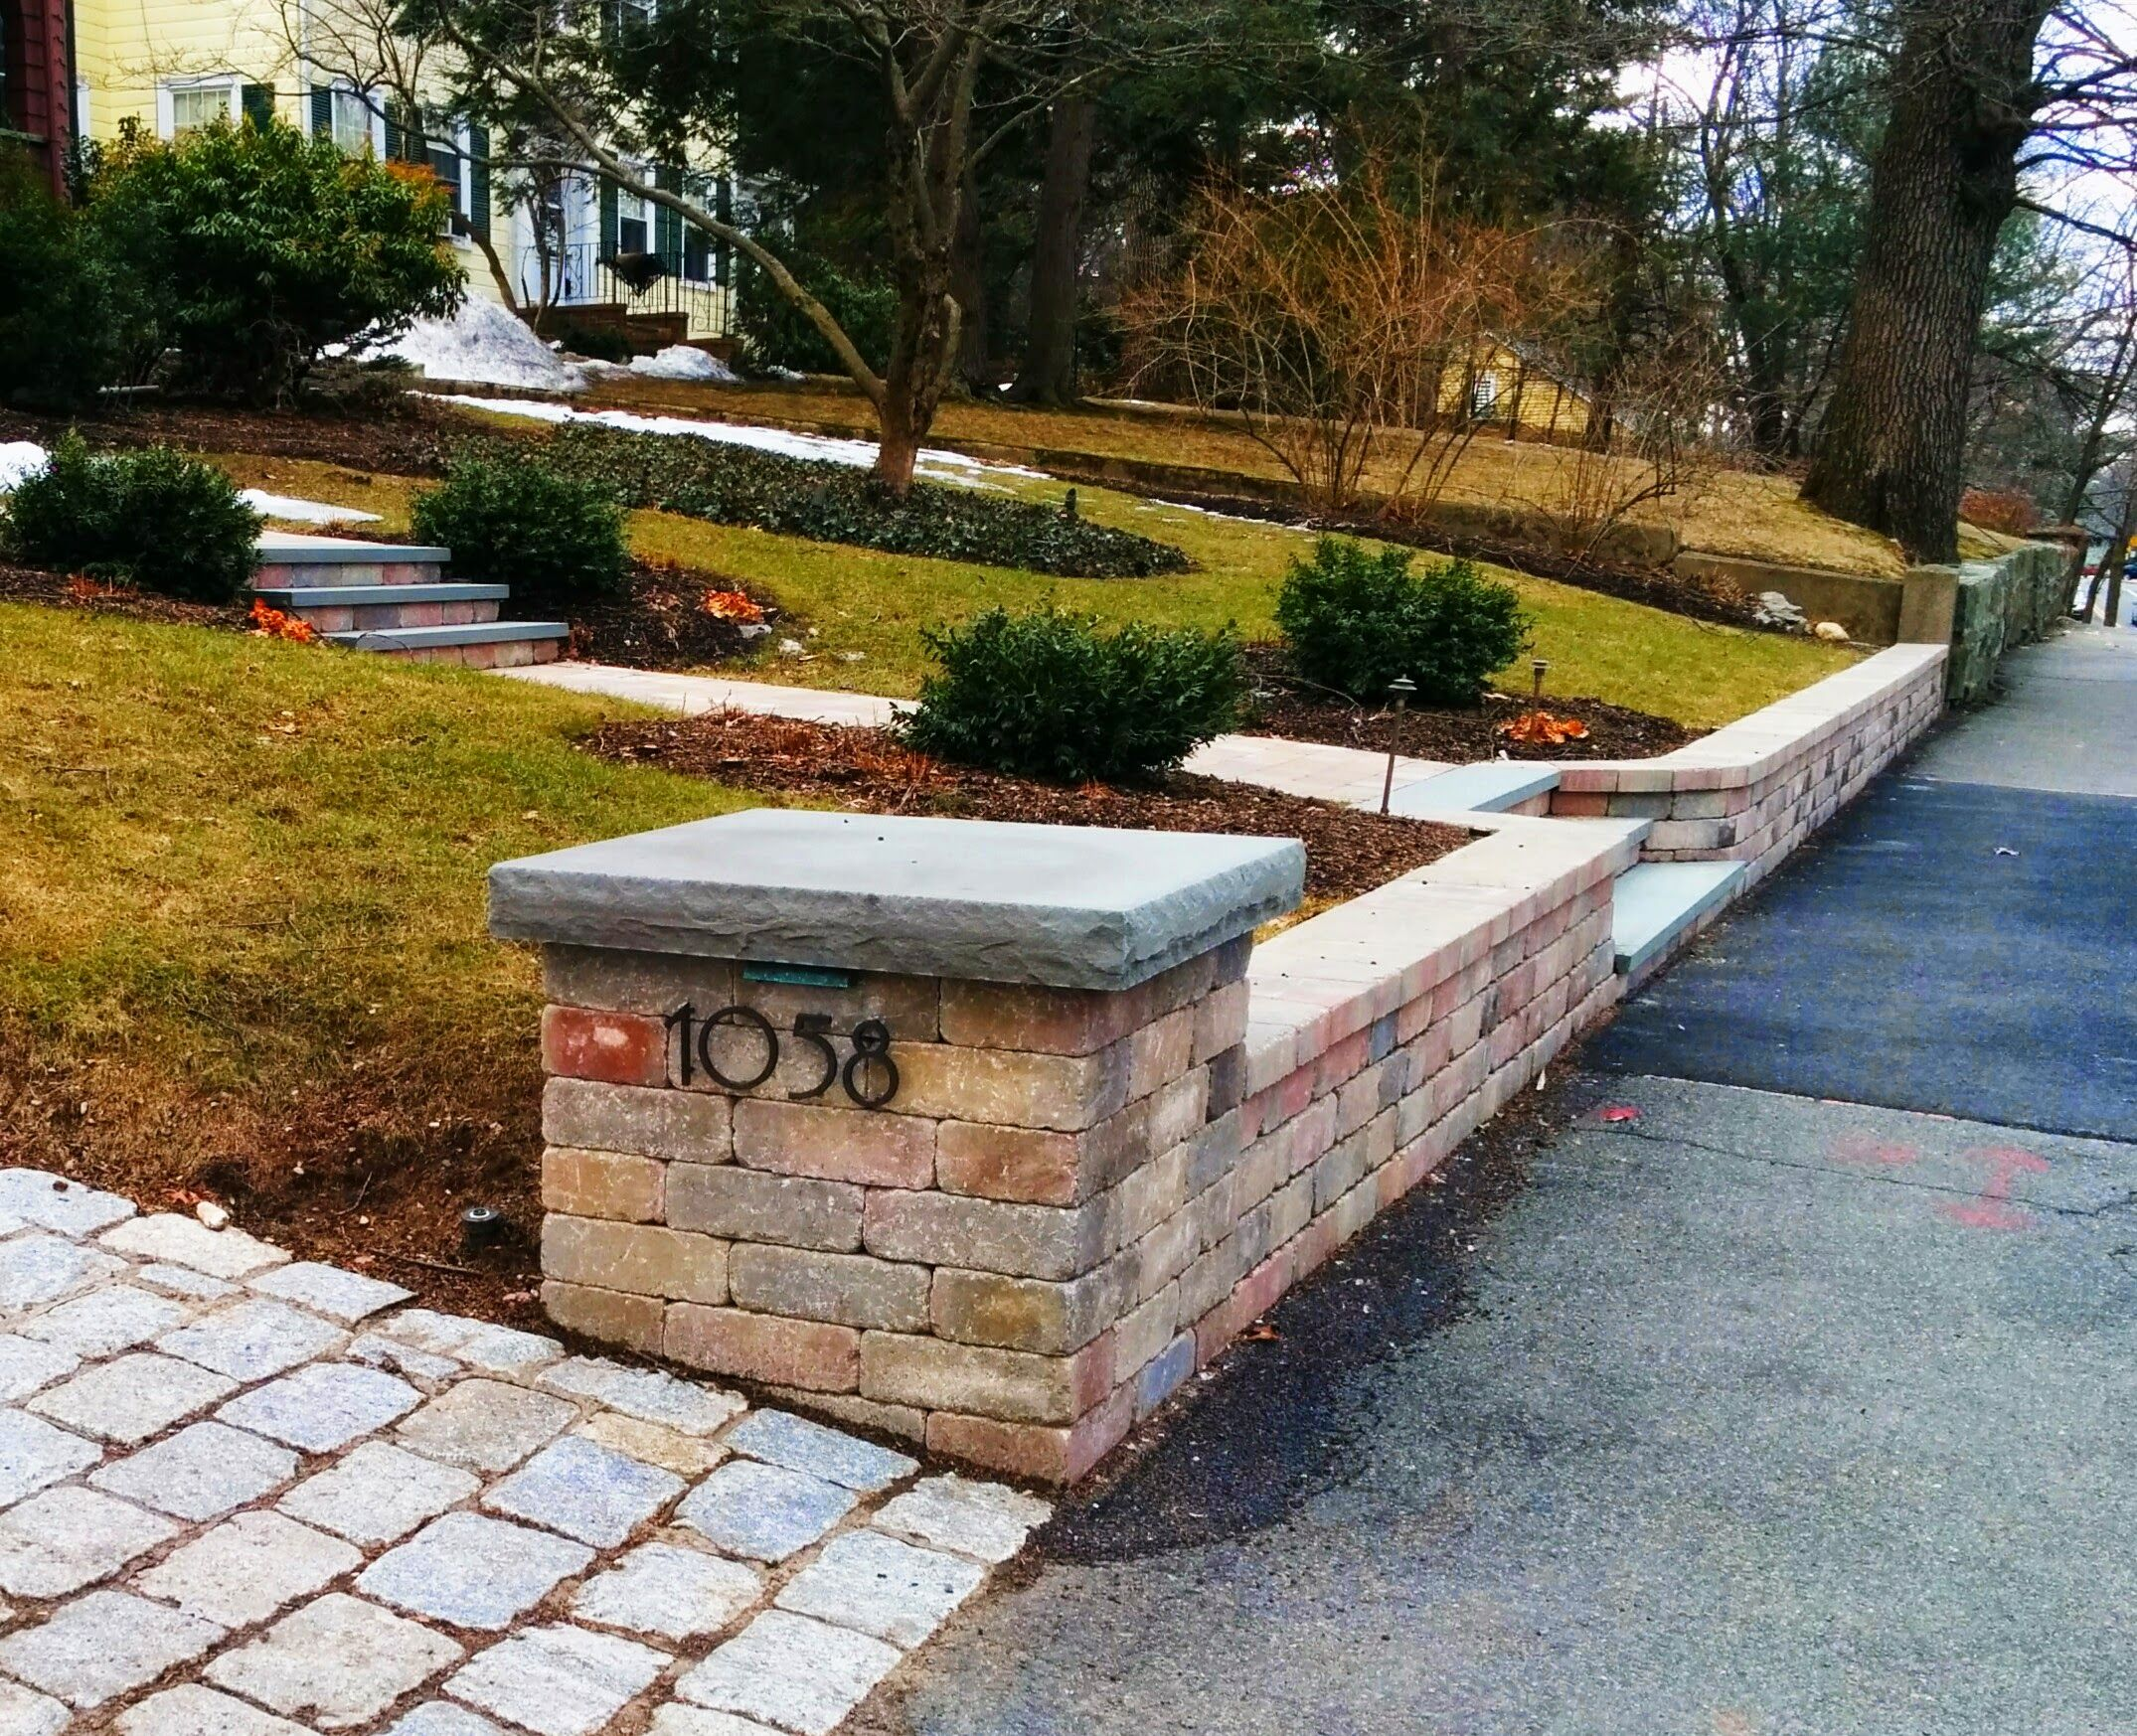 Segmental Concrete Block Retaining Wall Pillars And Steps With Bluestone Accents Built In Led L Concrete Block Retaining Wall Retaining Wall Concrete Blocks